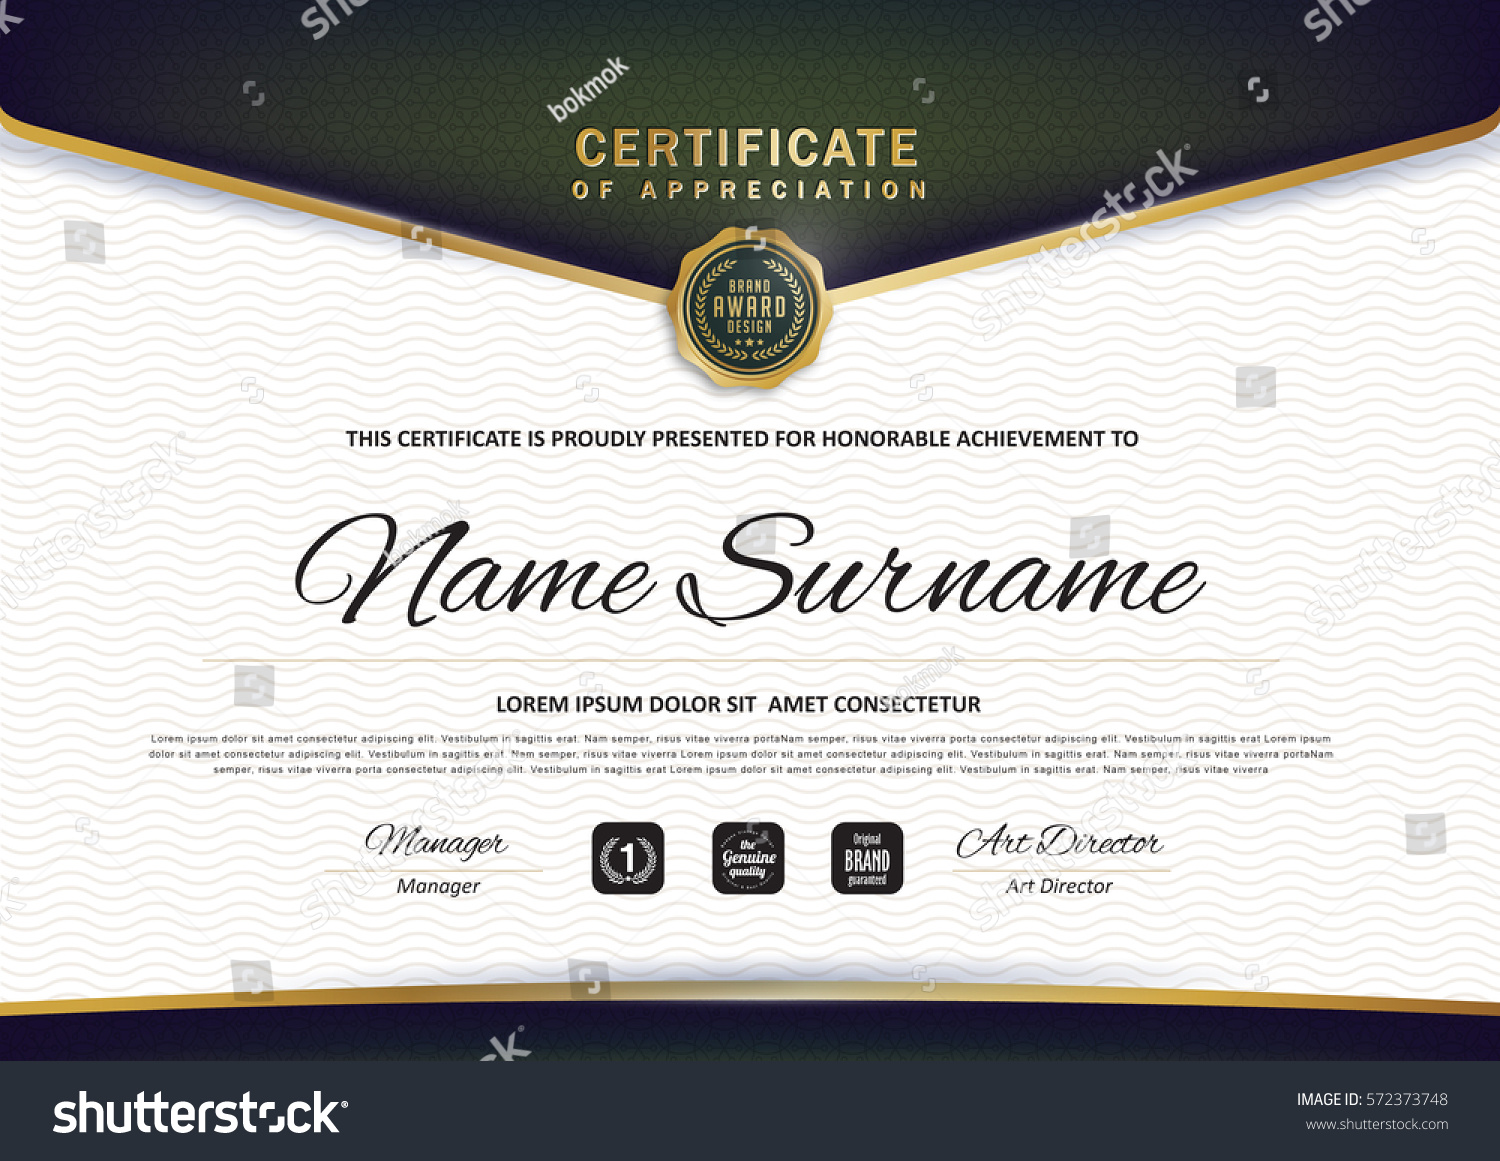 certificate template luxury modern patterndiplomavector  certificate template luxury and modern pattern diploma vector illustration